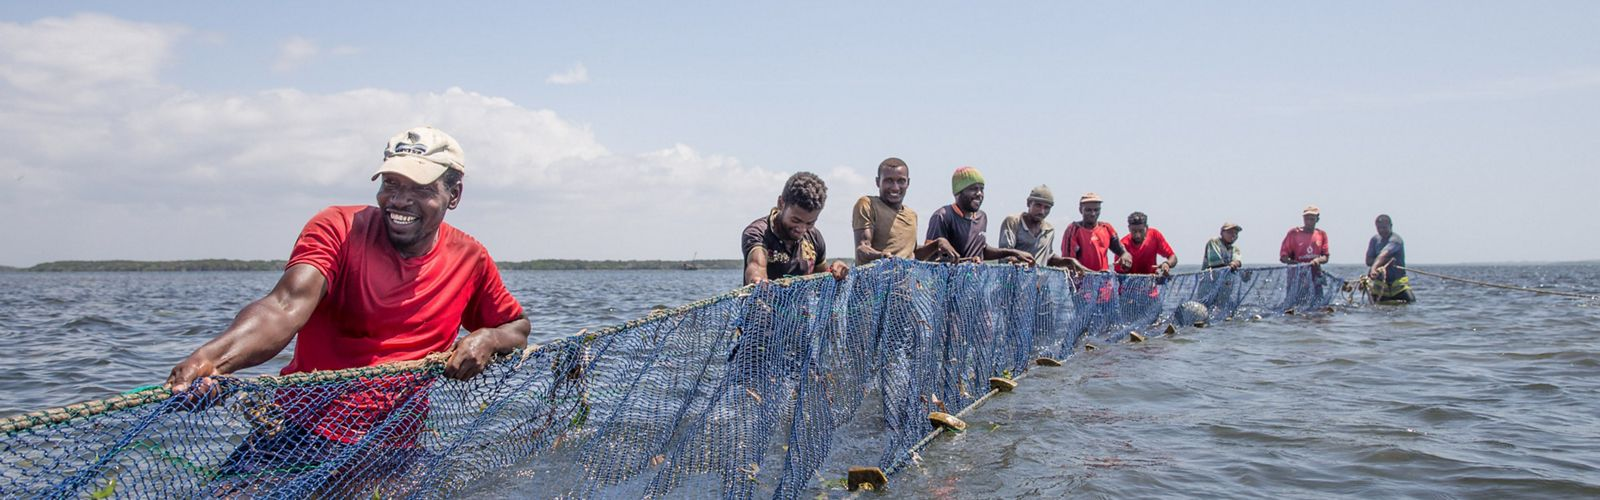 Fishermen from Pate Island in Lamu County pull a beach seine net in the Indian Ocean waters.